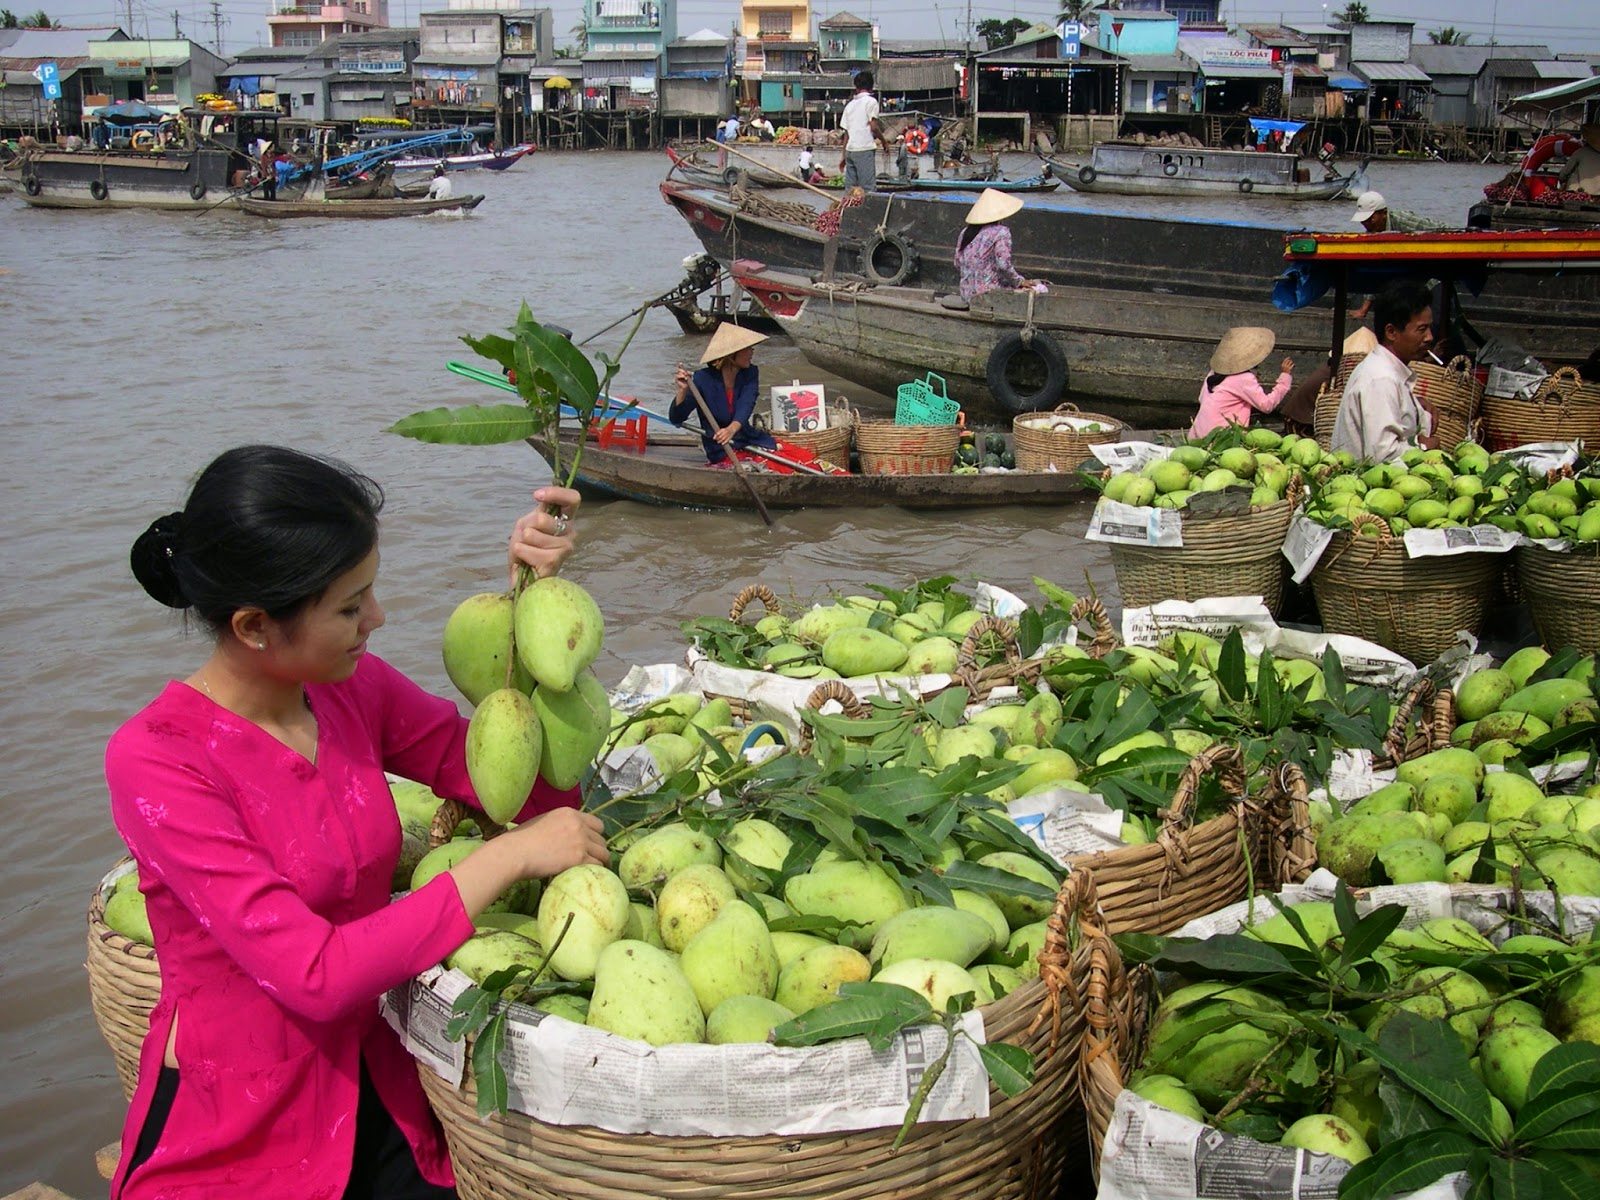 The_Beauty_of_Can_Tho_province_Vietnam_04